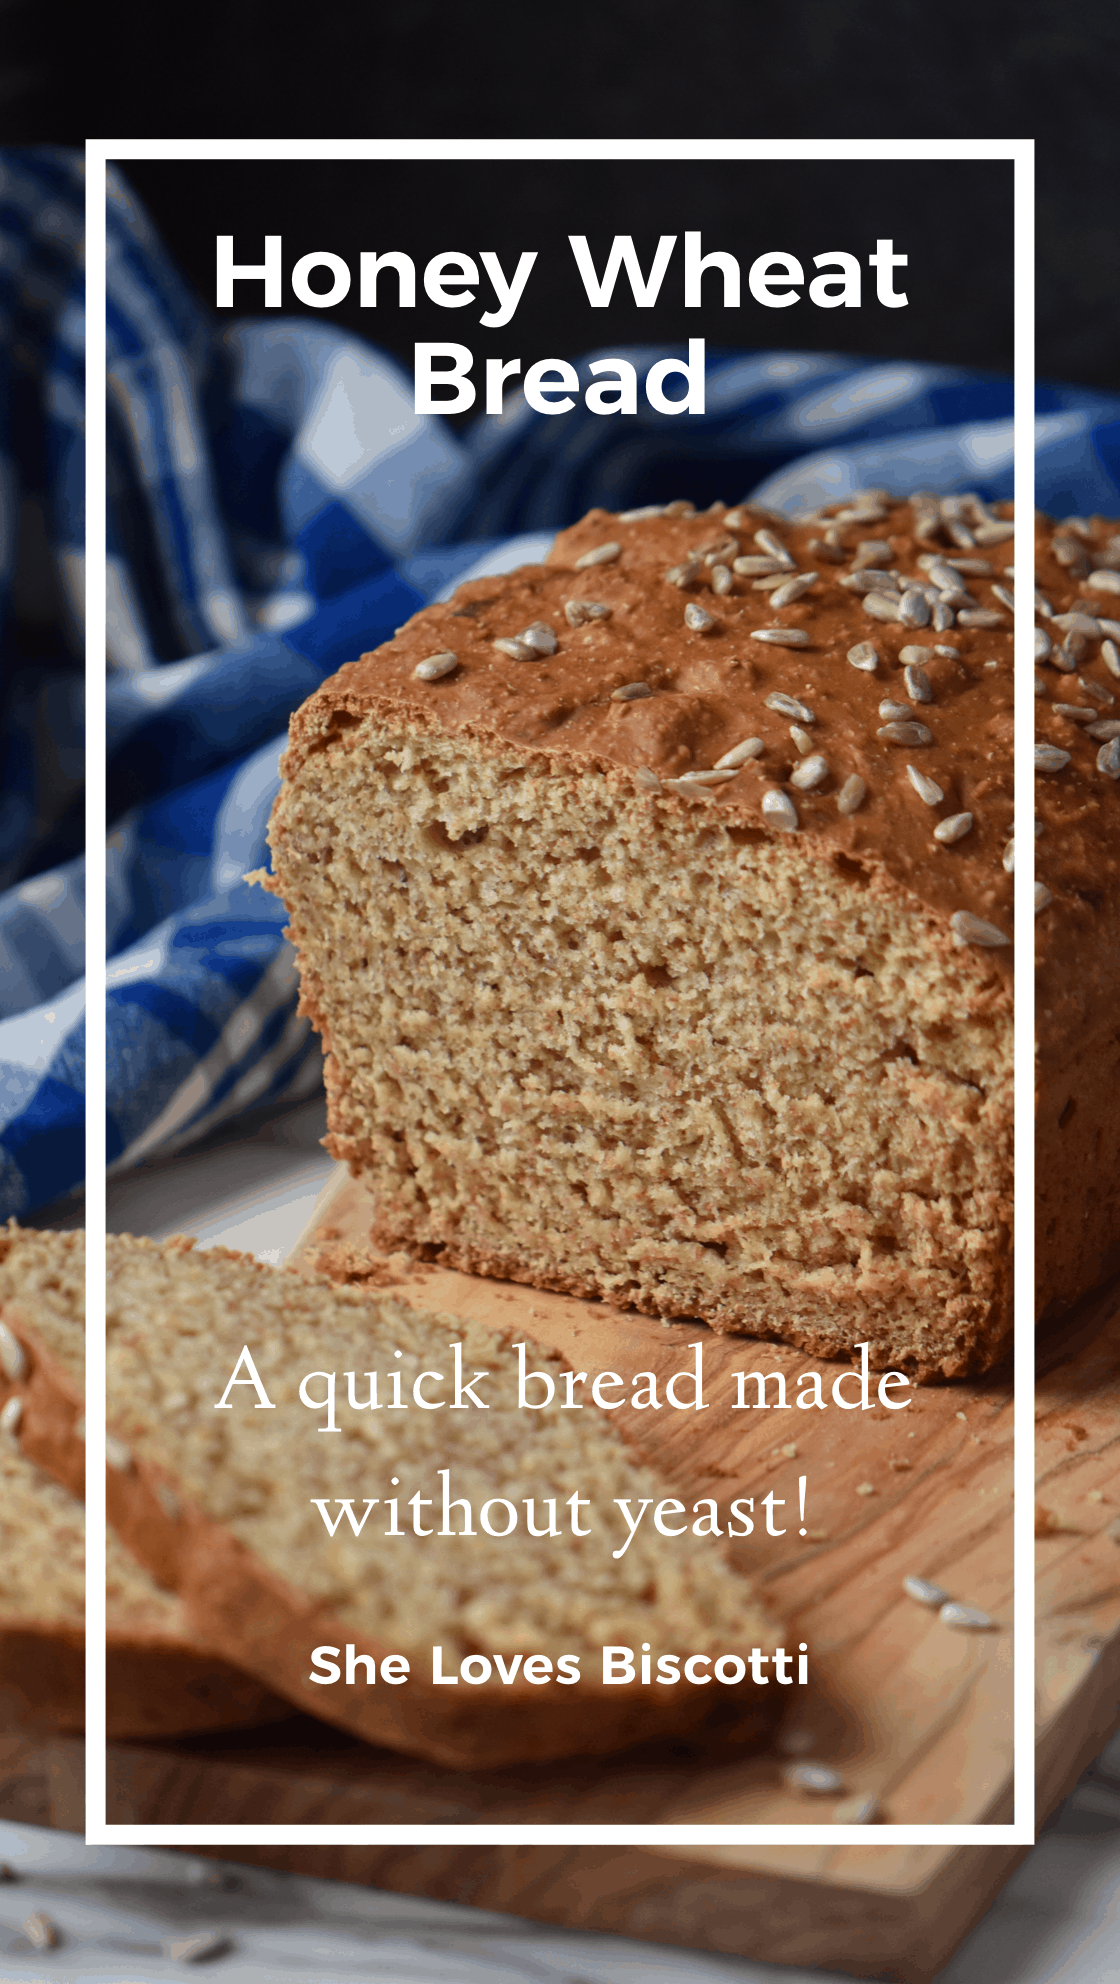 Honey Wheat Bread: Yeast Free! - She Loves Biscotti